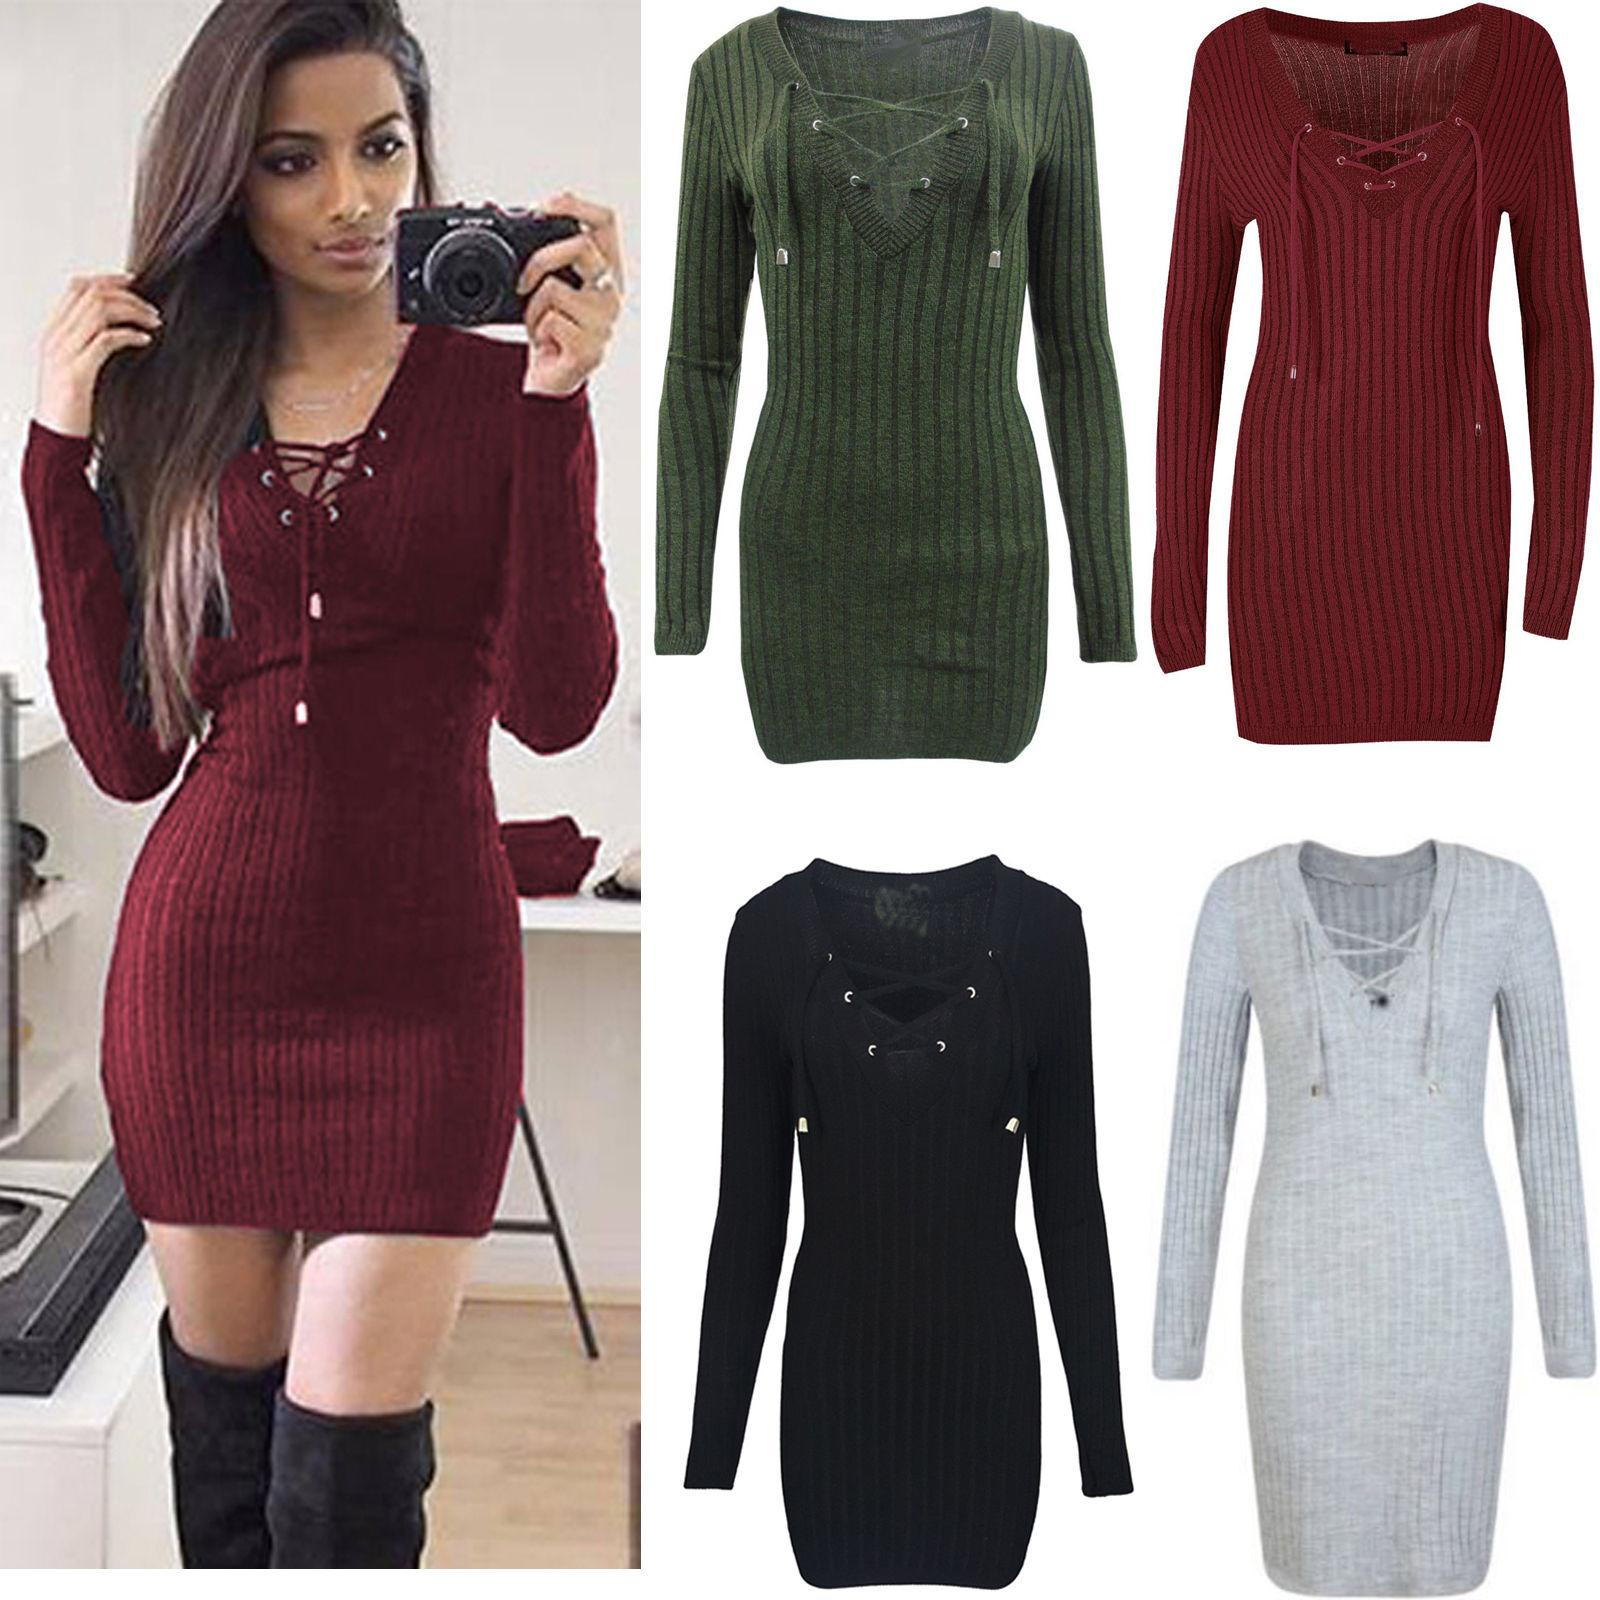 1f3a44b8e0fc Fashion Womens Ladies Eyelet Lace Up Sweater V Neck Pullover Long Sleeve  Ribbed Knitted Jumper Tops Slim Bodycon Short Mini Dress Green Dresses  Cheap Summer ...